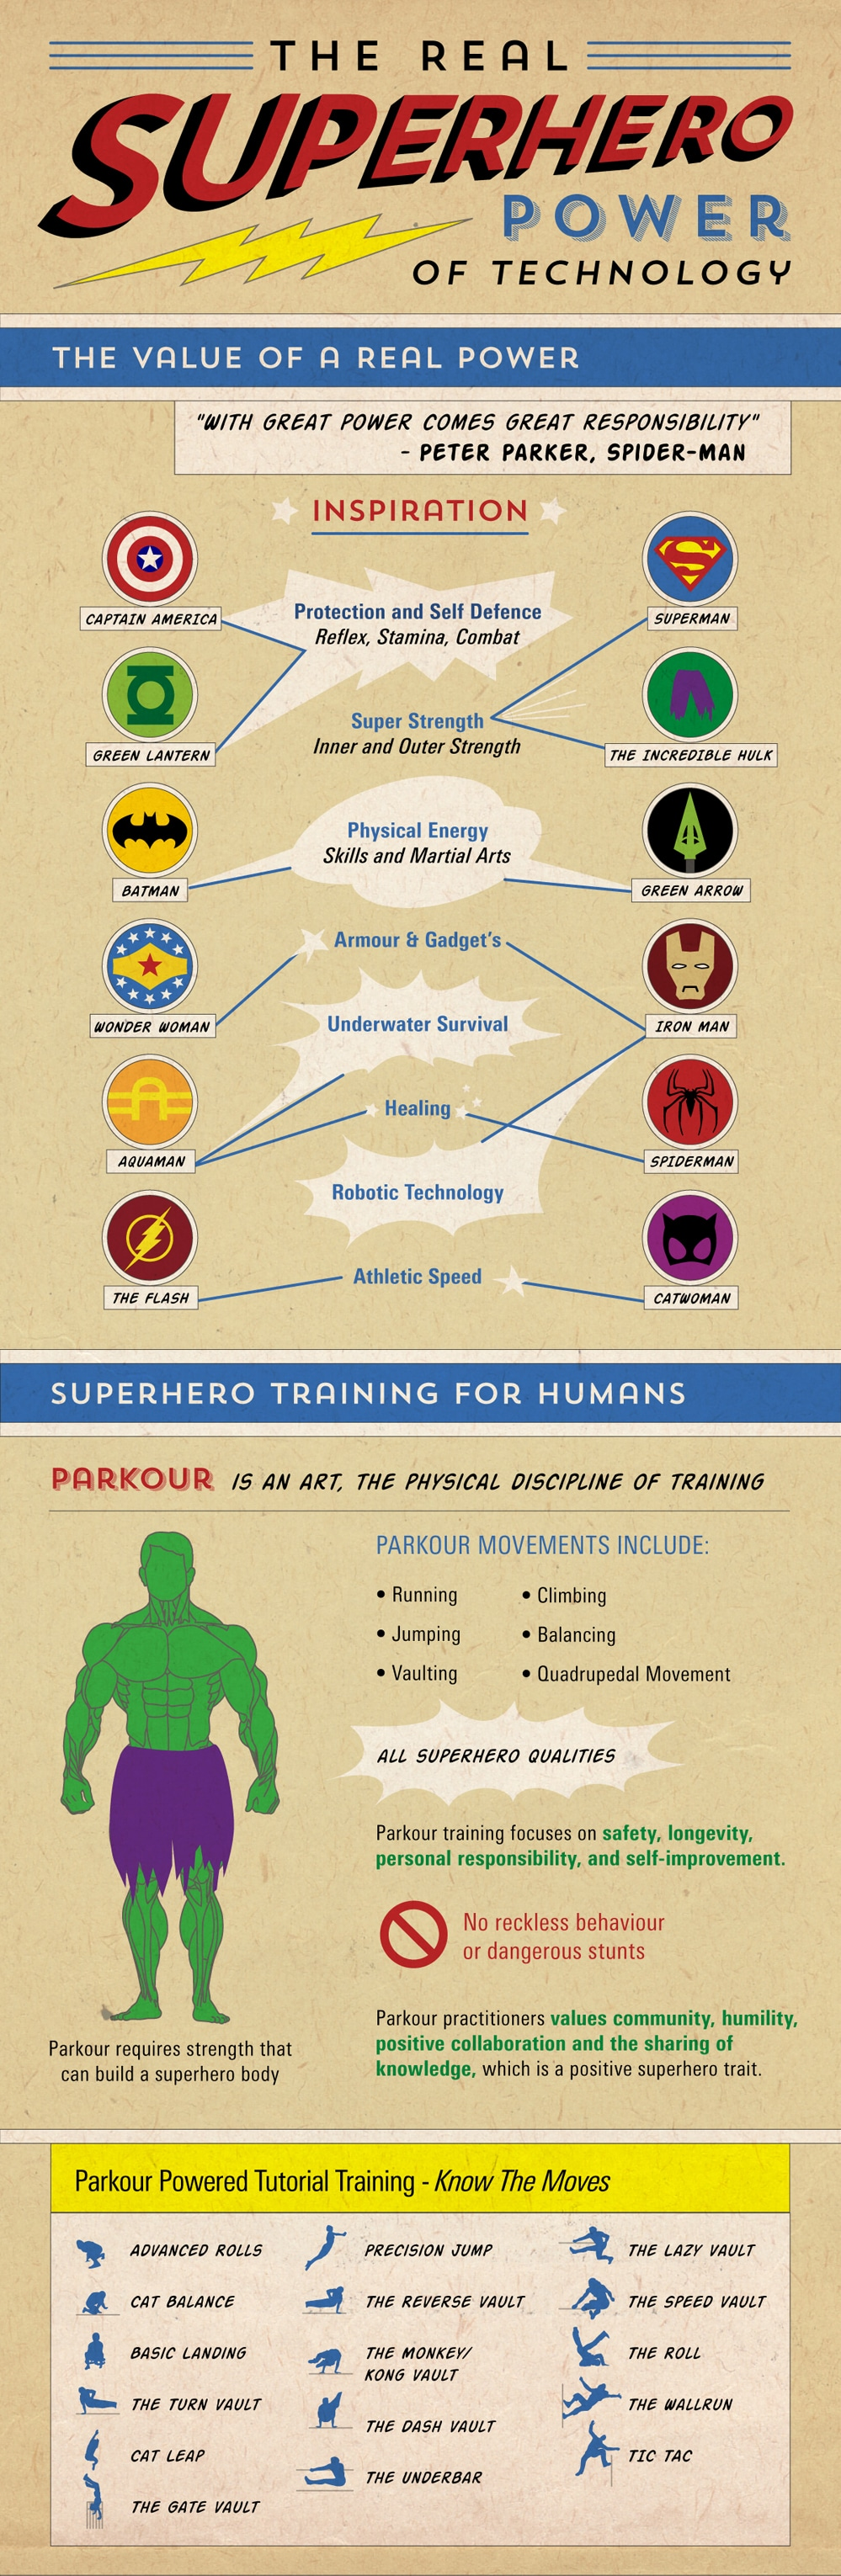 Current Technologies That Could Build Real Superheroes [Infographic]